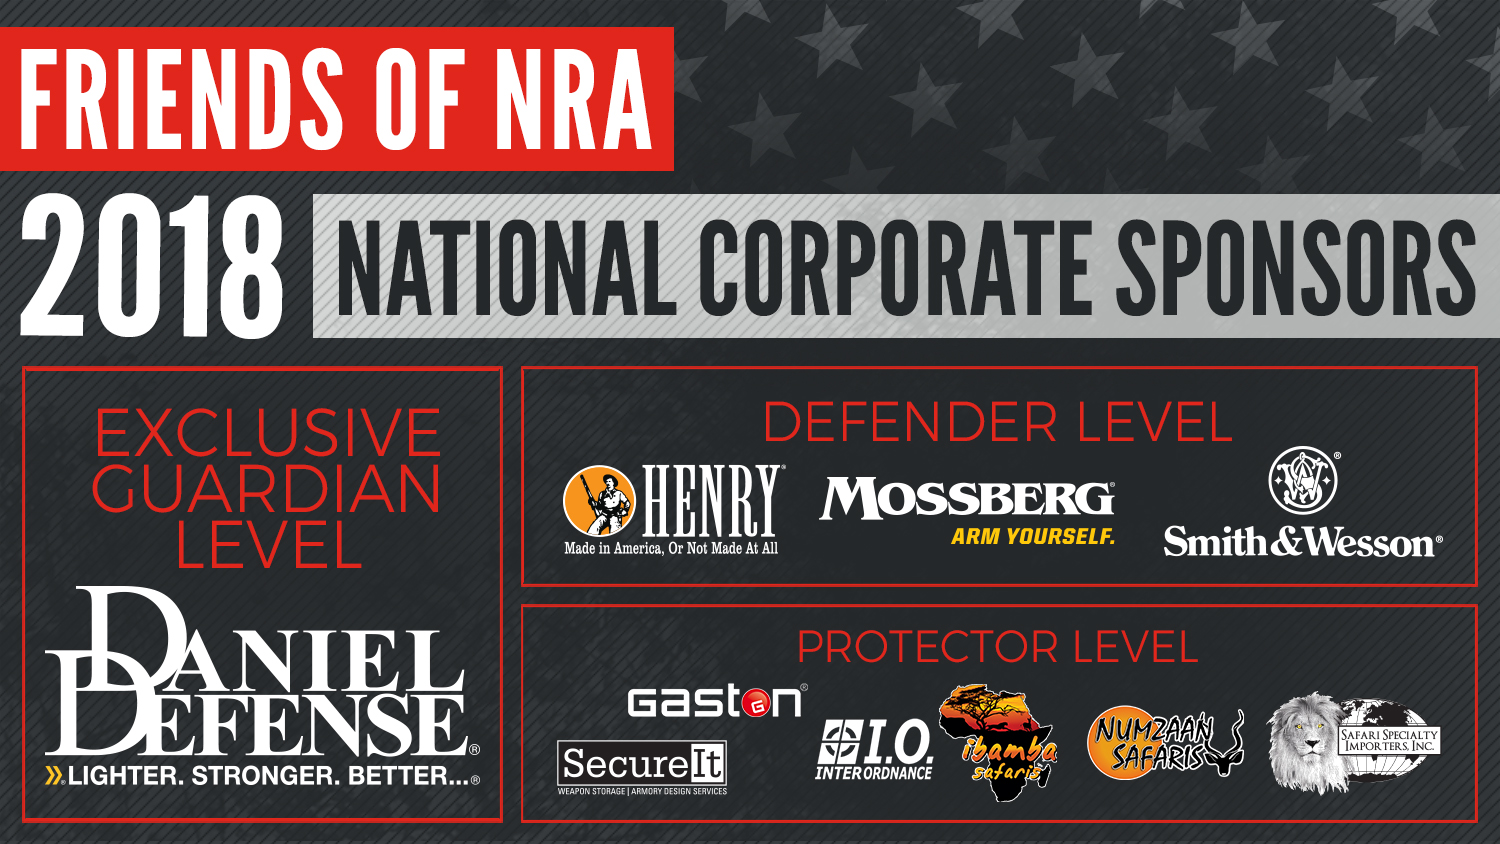 2018 Friends of NRA National Corporate Sponsor Program